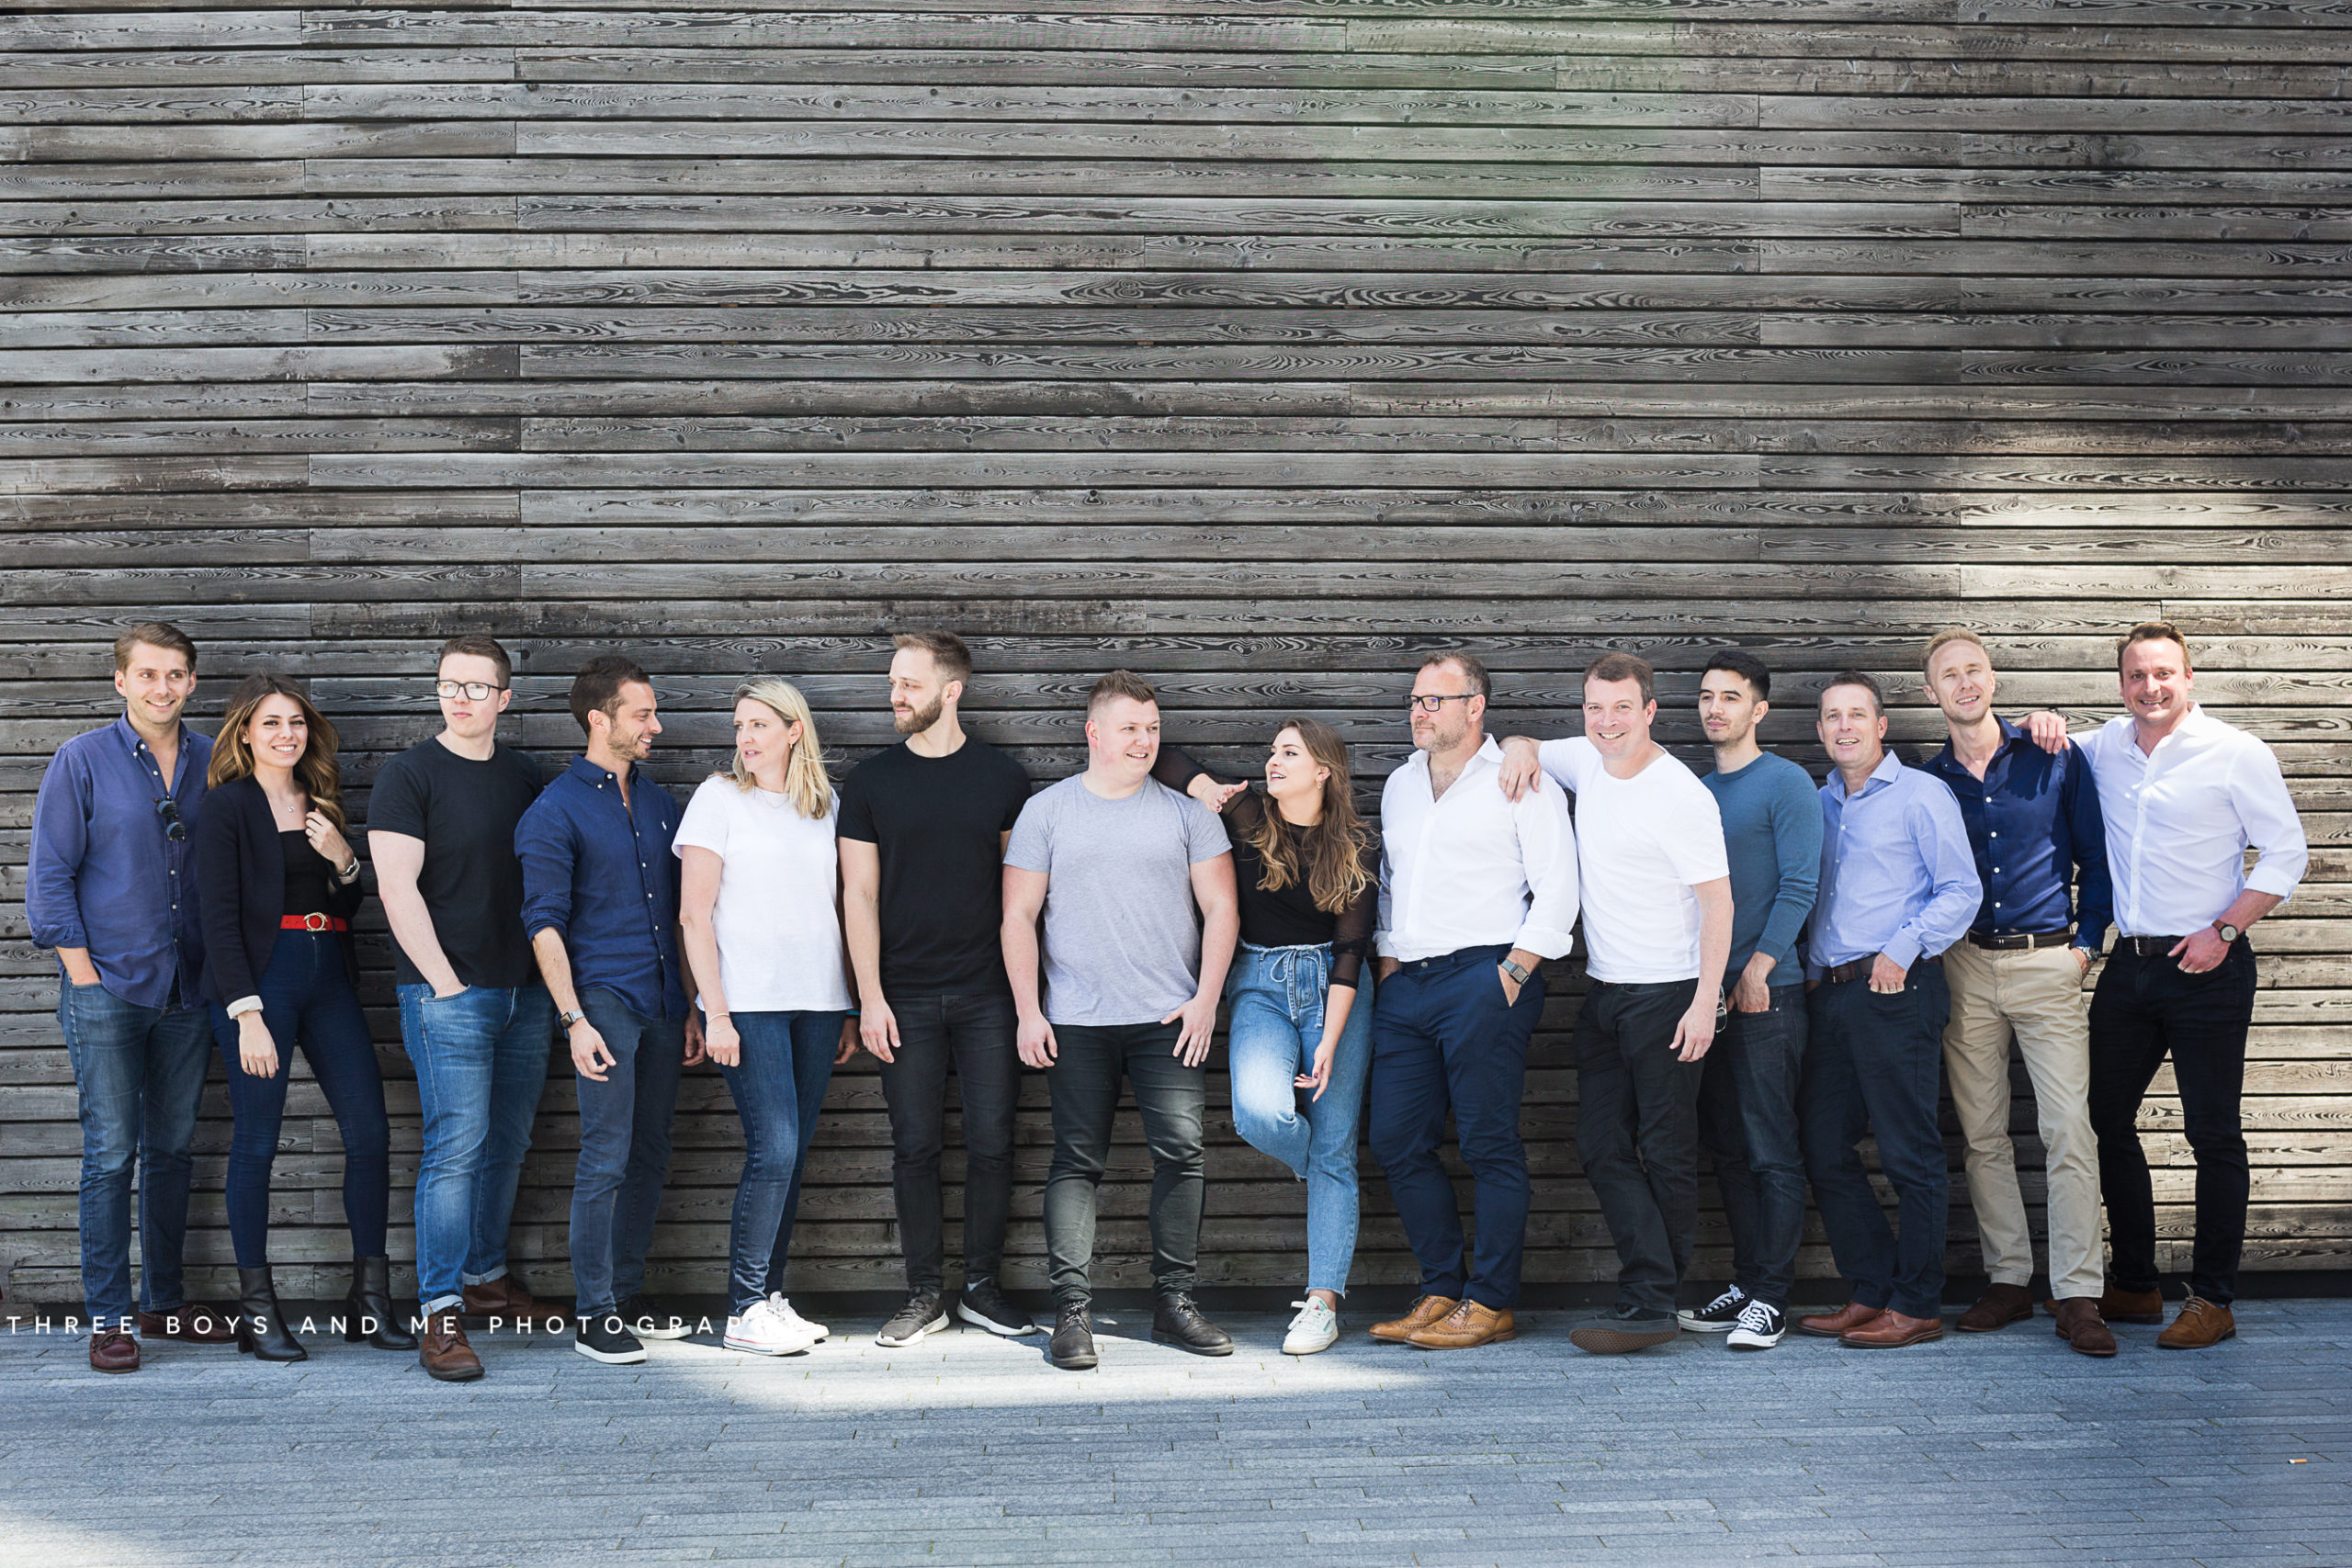 IT recruitment team shot with contemporary wooden background at their meet the team commercial shoot